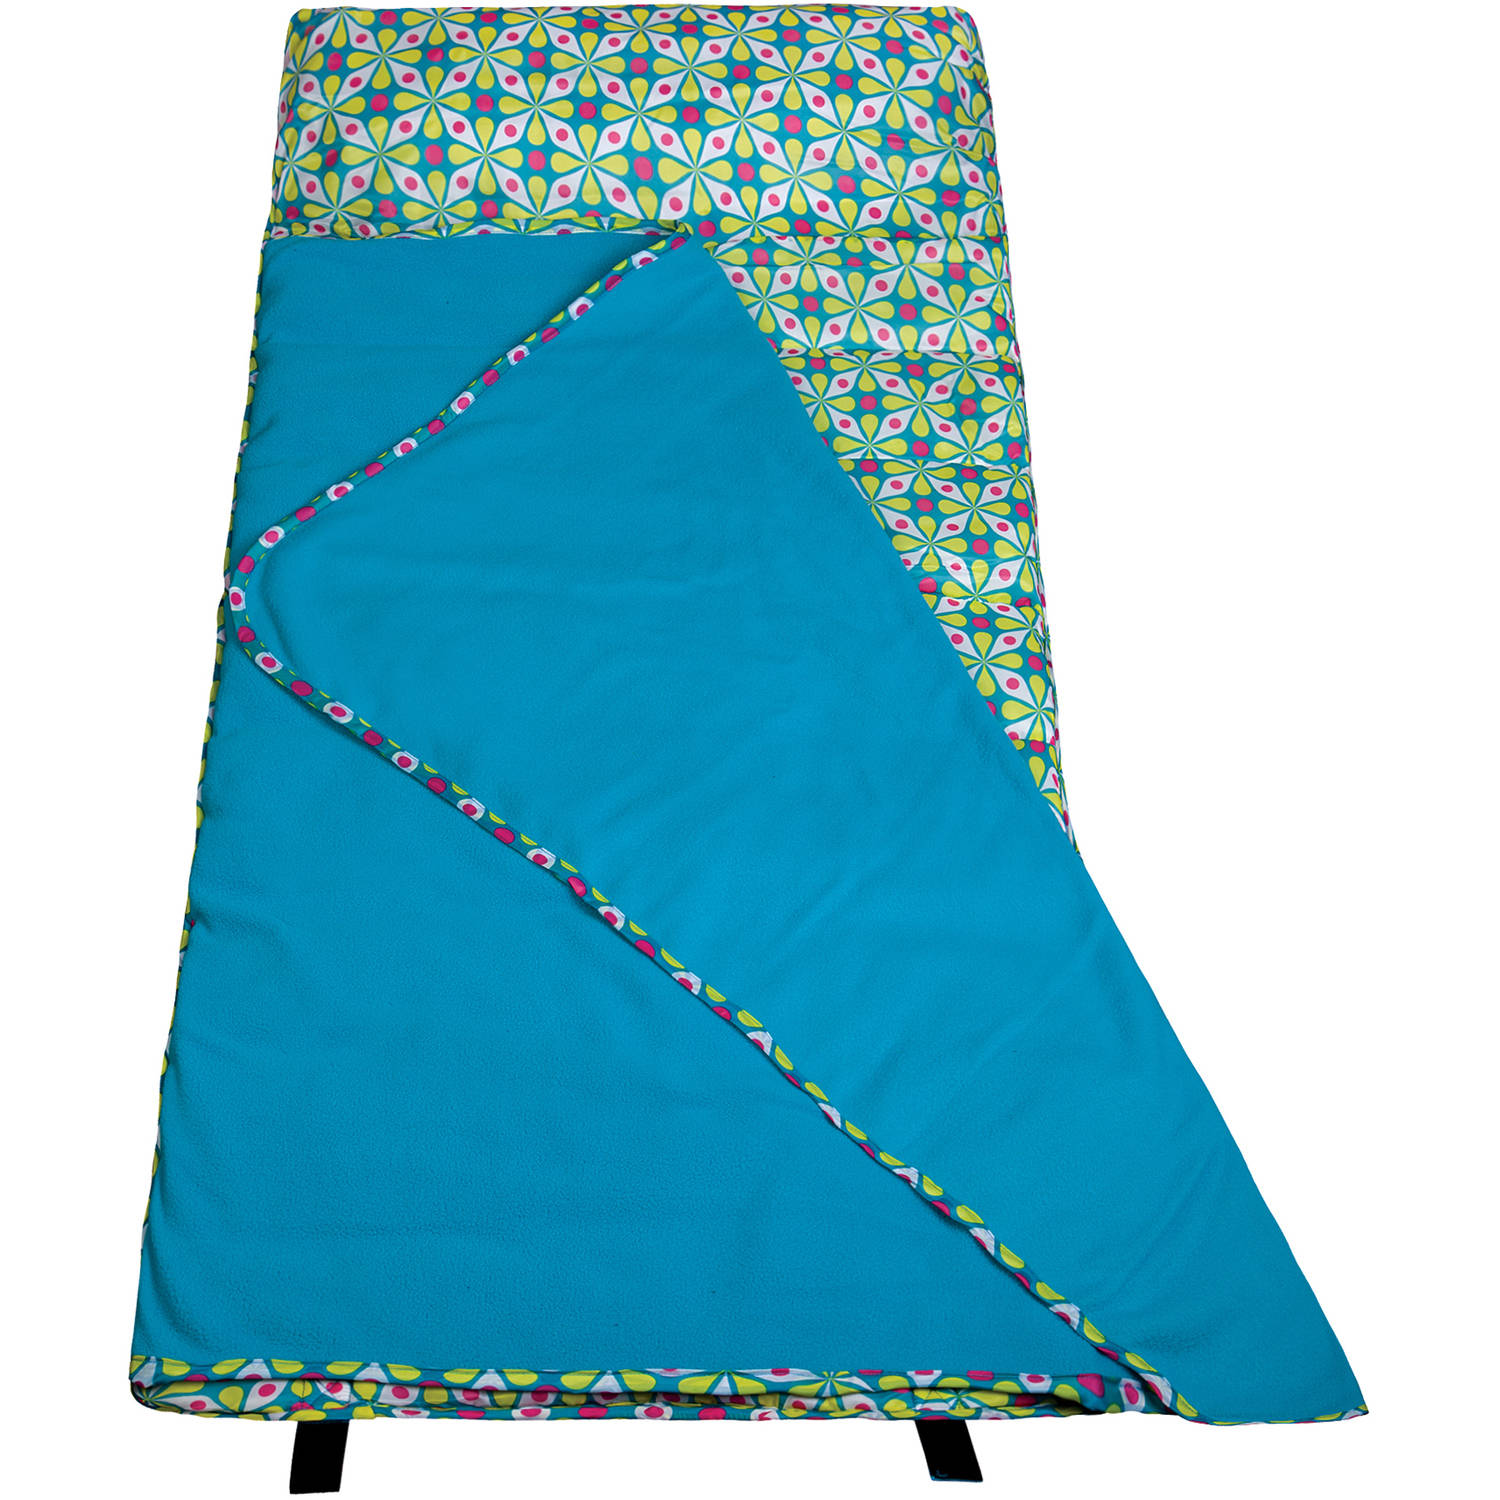 Kaleidoscope Maize Easy Clean Nap Mat